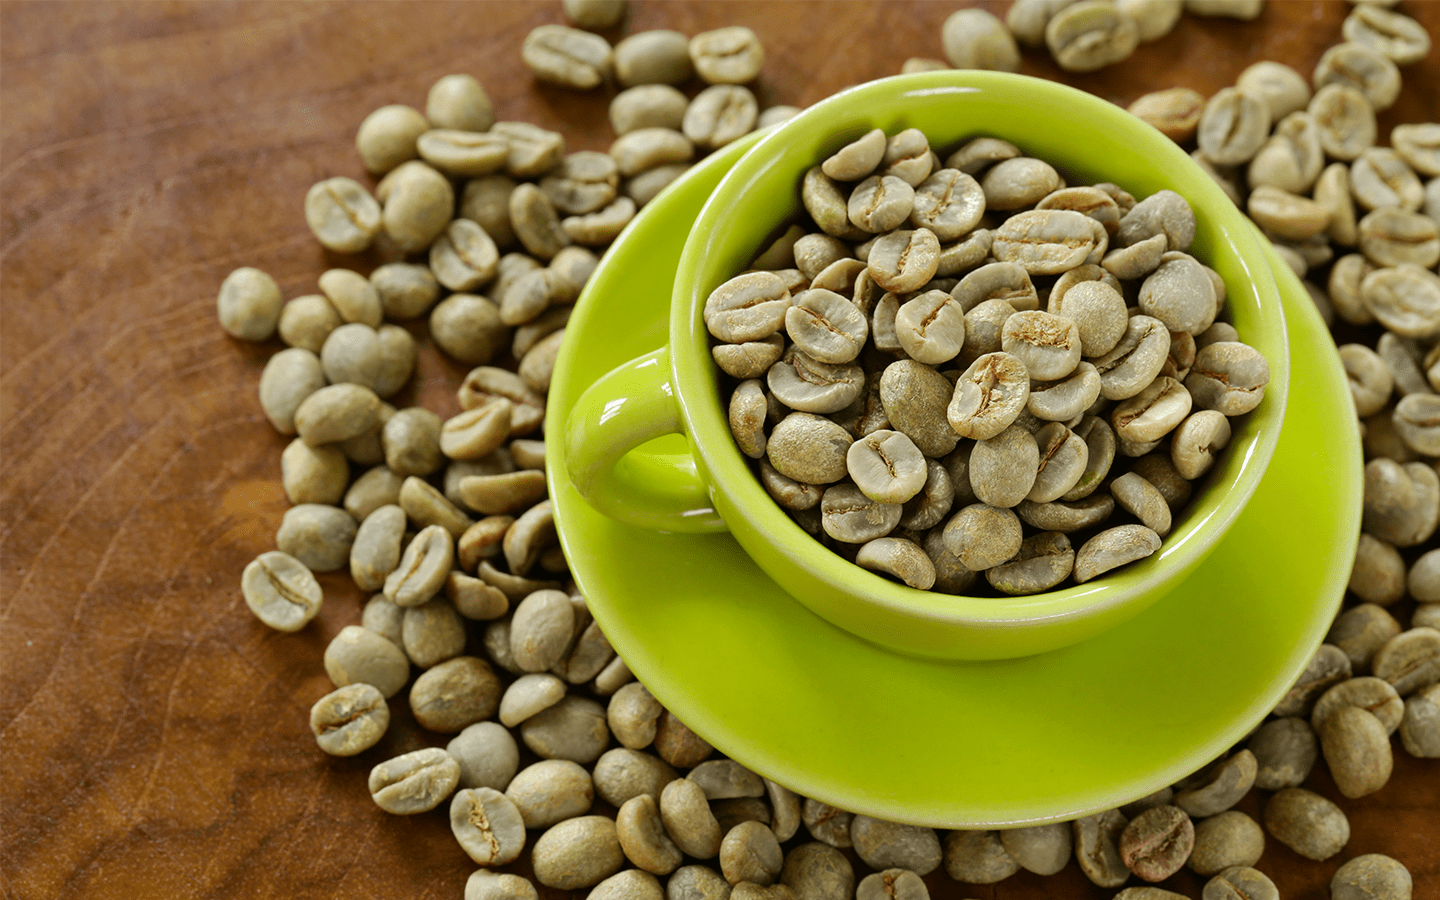 Green Coffee Beans Benefits For Health And Body Skin Hair And